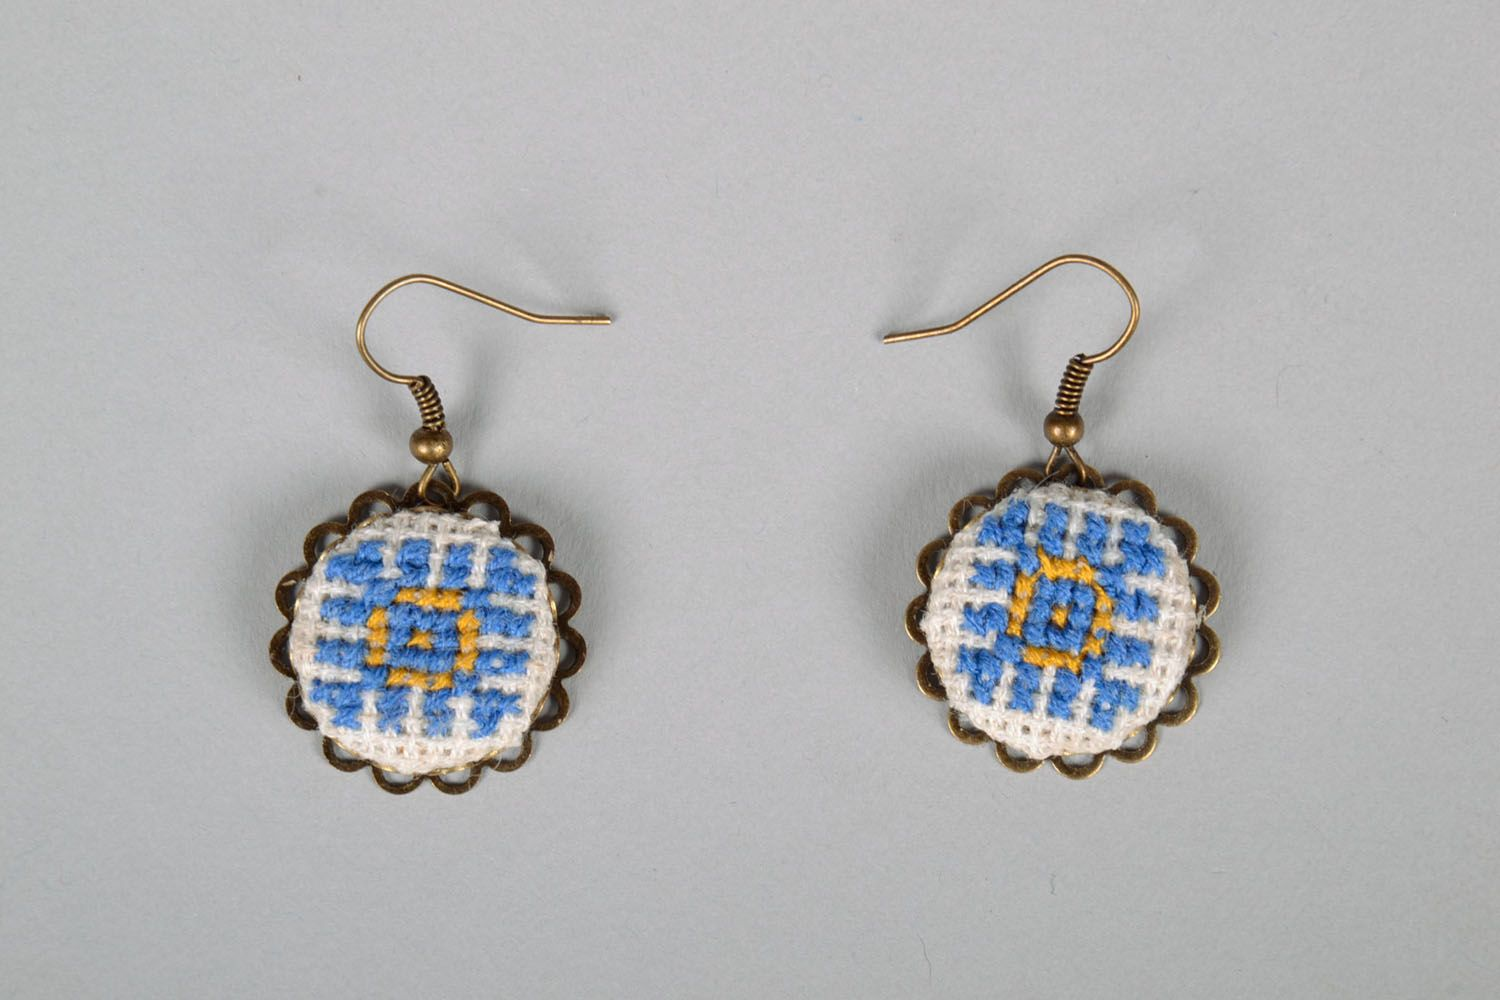 Pendant earrings with embroidery photo 2